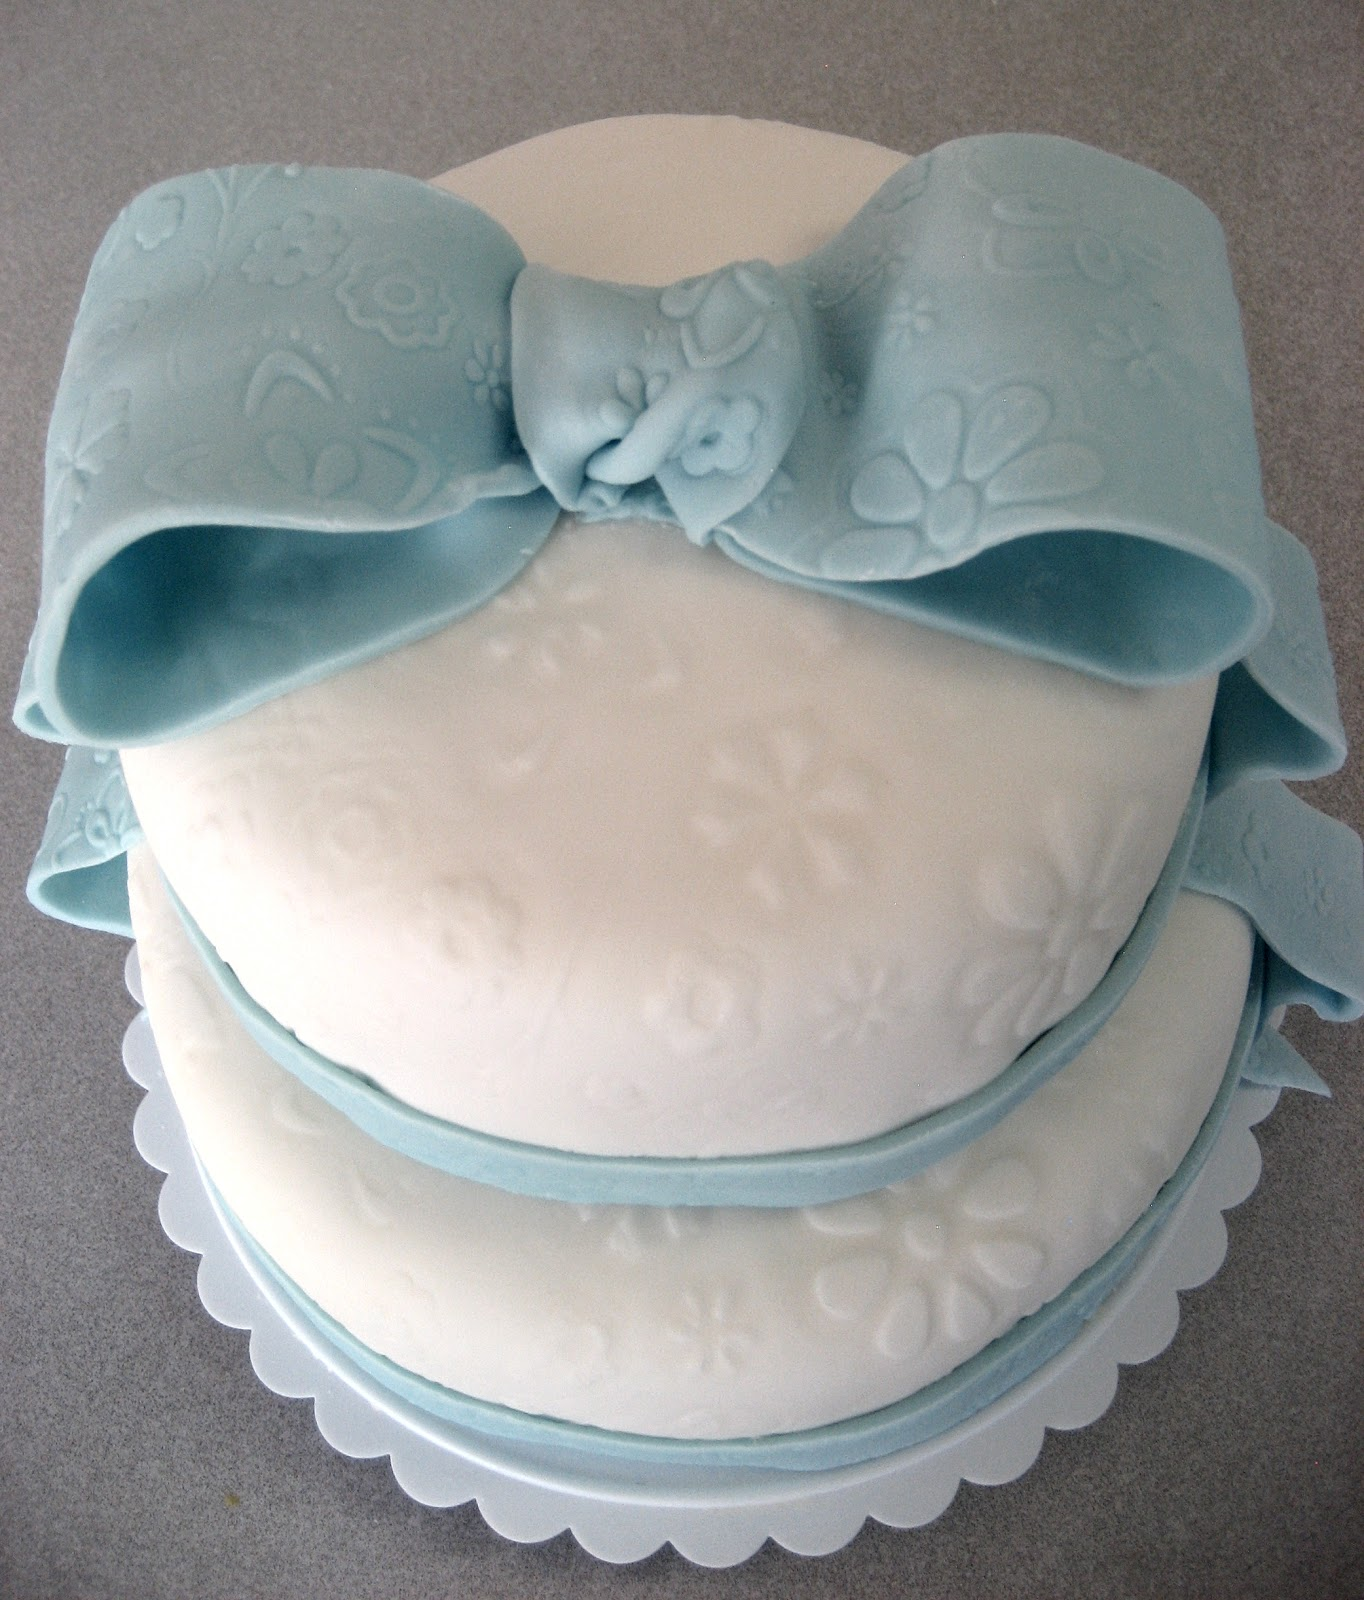 devanys designs simple and elegant baby shower cake